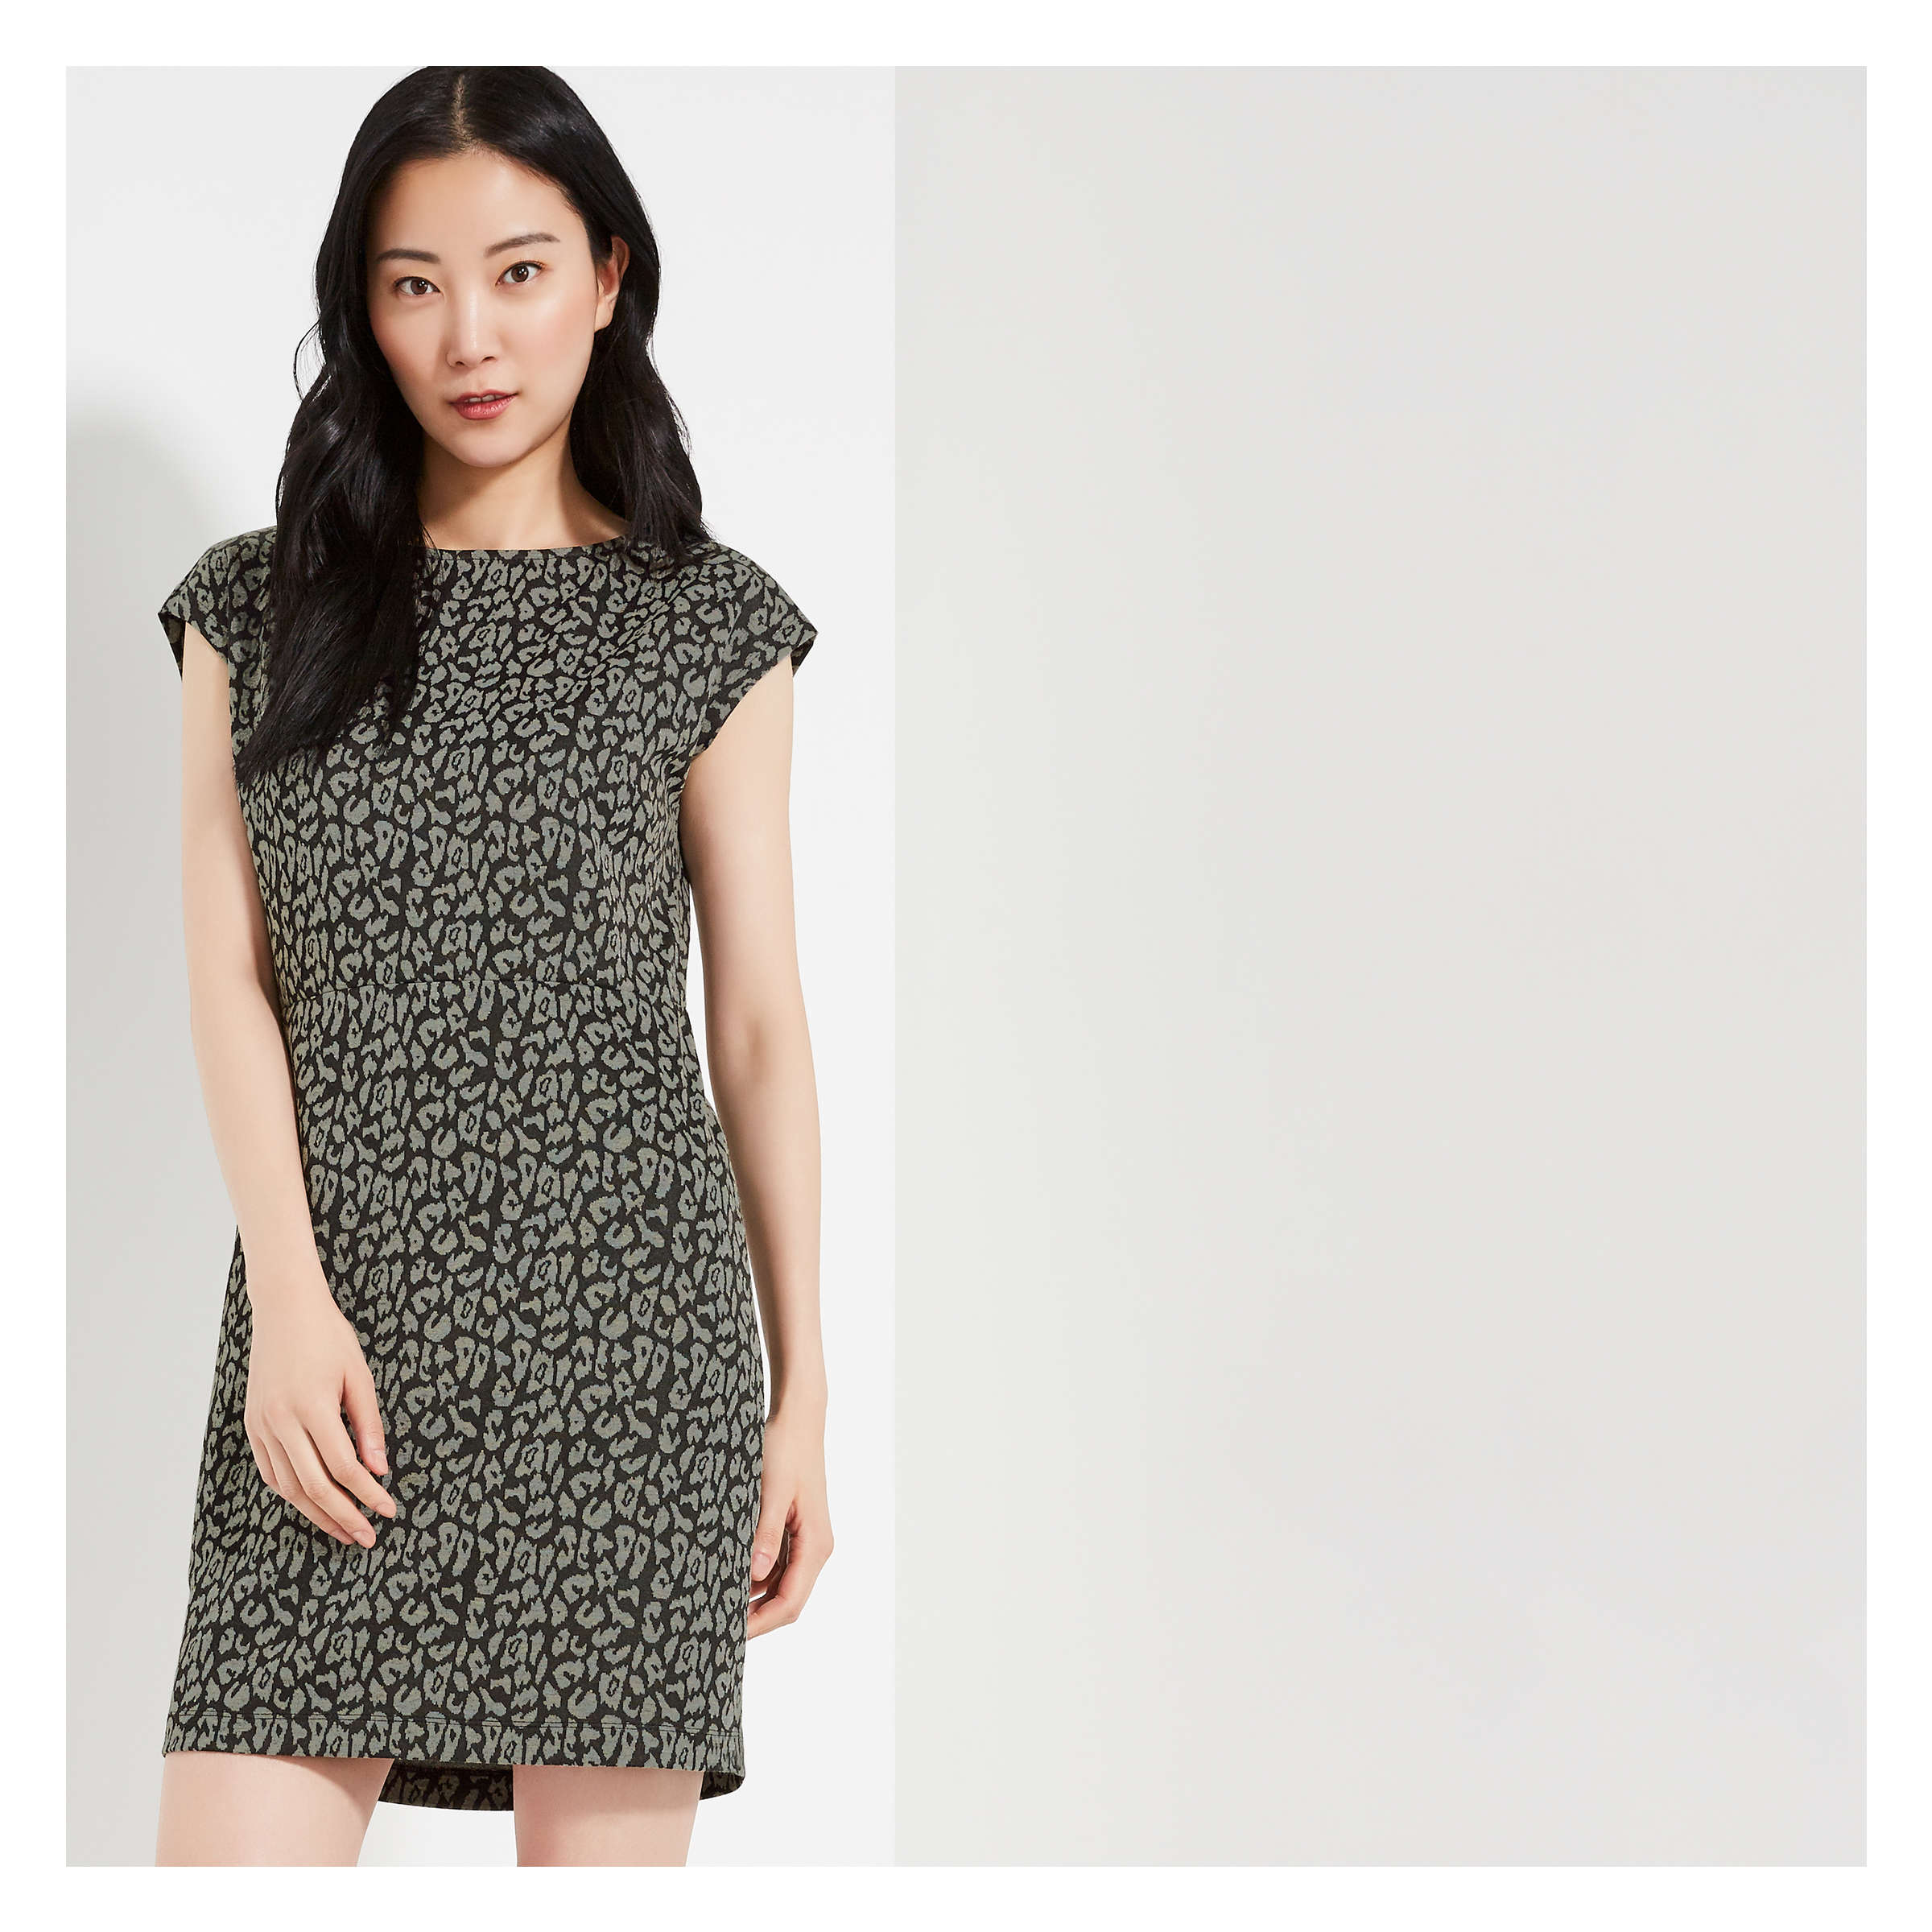 Print Jacquard Knit Dress by Joe Fresh